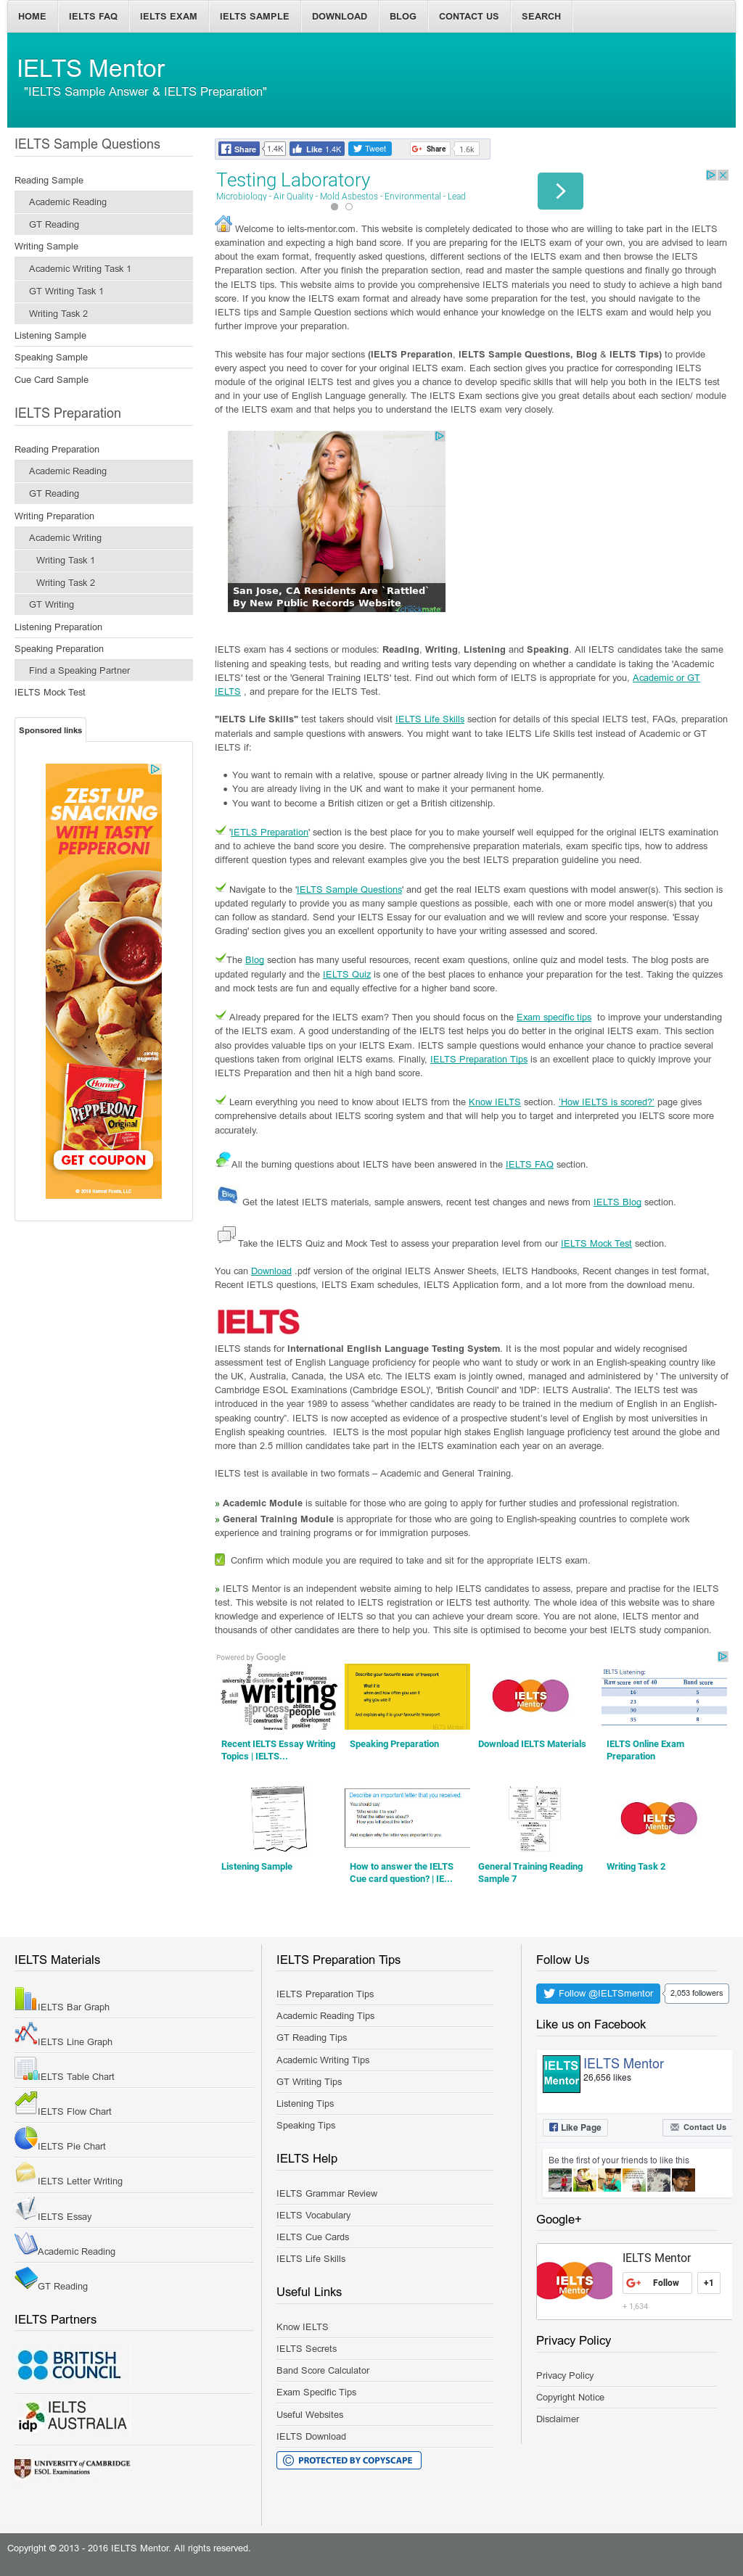 Owler Reports - Ielts Mentor Blog IELTS Academic Reading Test 1